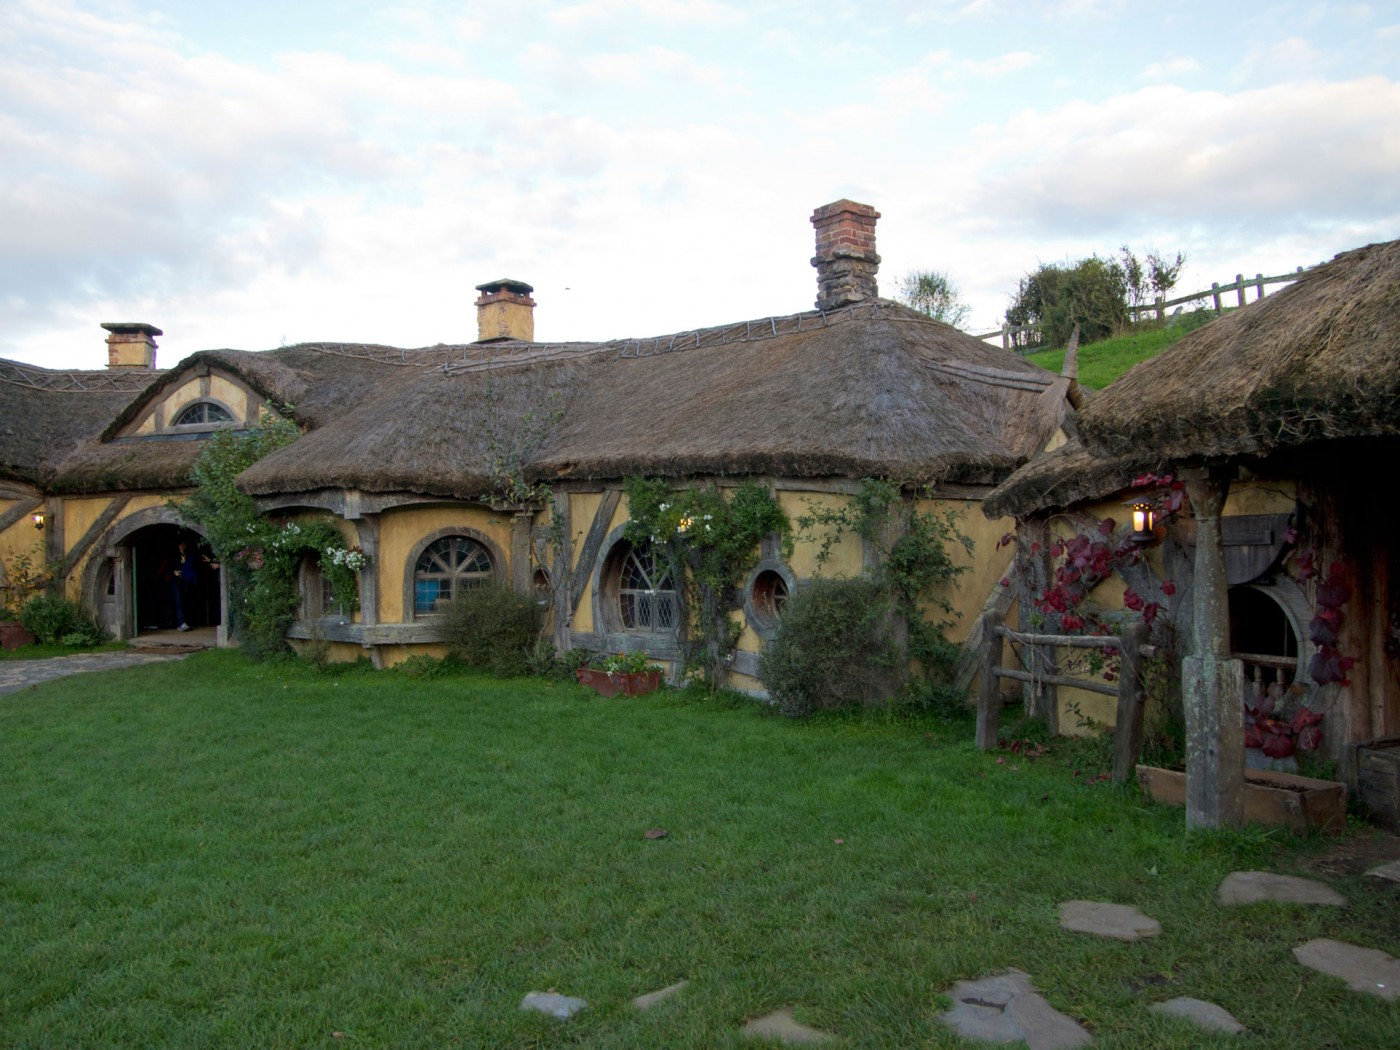 Green Dragon, Hobbiton Movie Set Tours, Matamata, Herr der Ringe, der Hobbit, Neuseeland